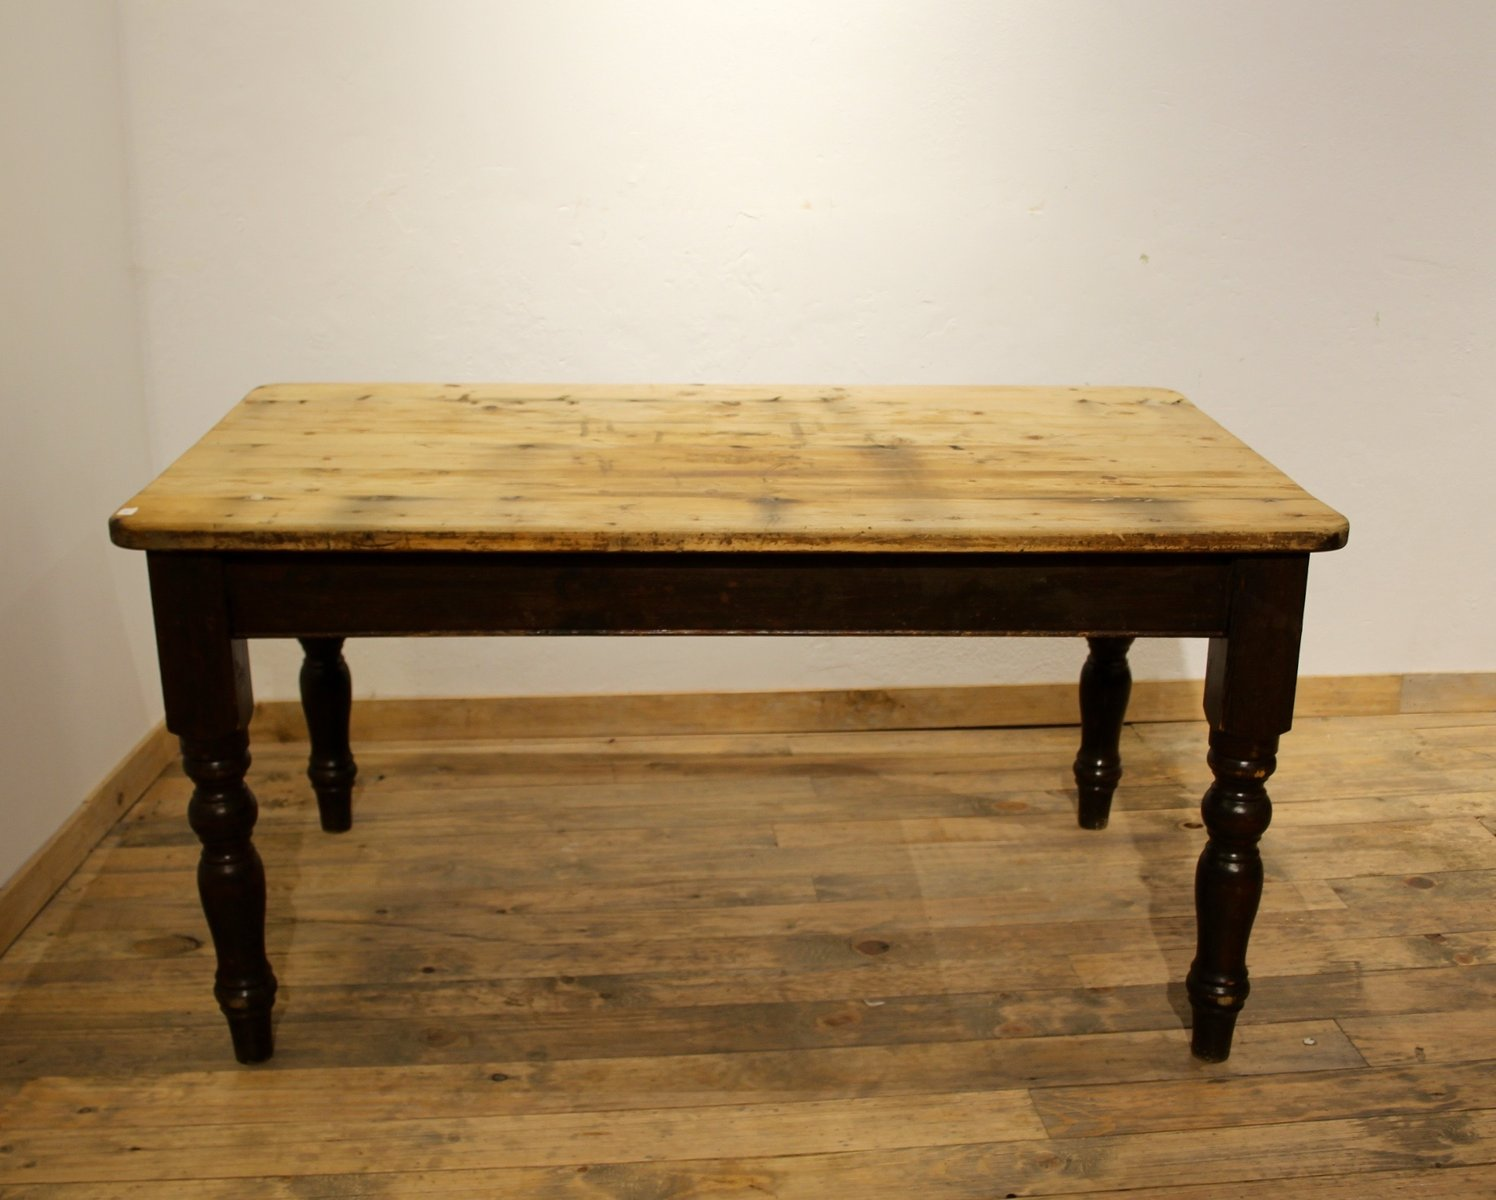 Japanese Dining Table For Sale Antique English Dining Table For Sale At Pamono